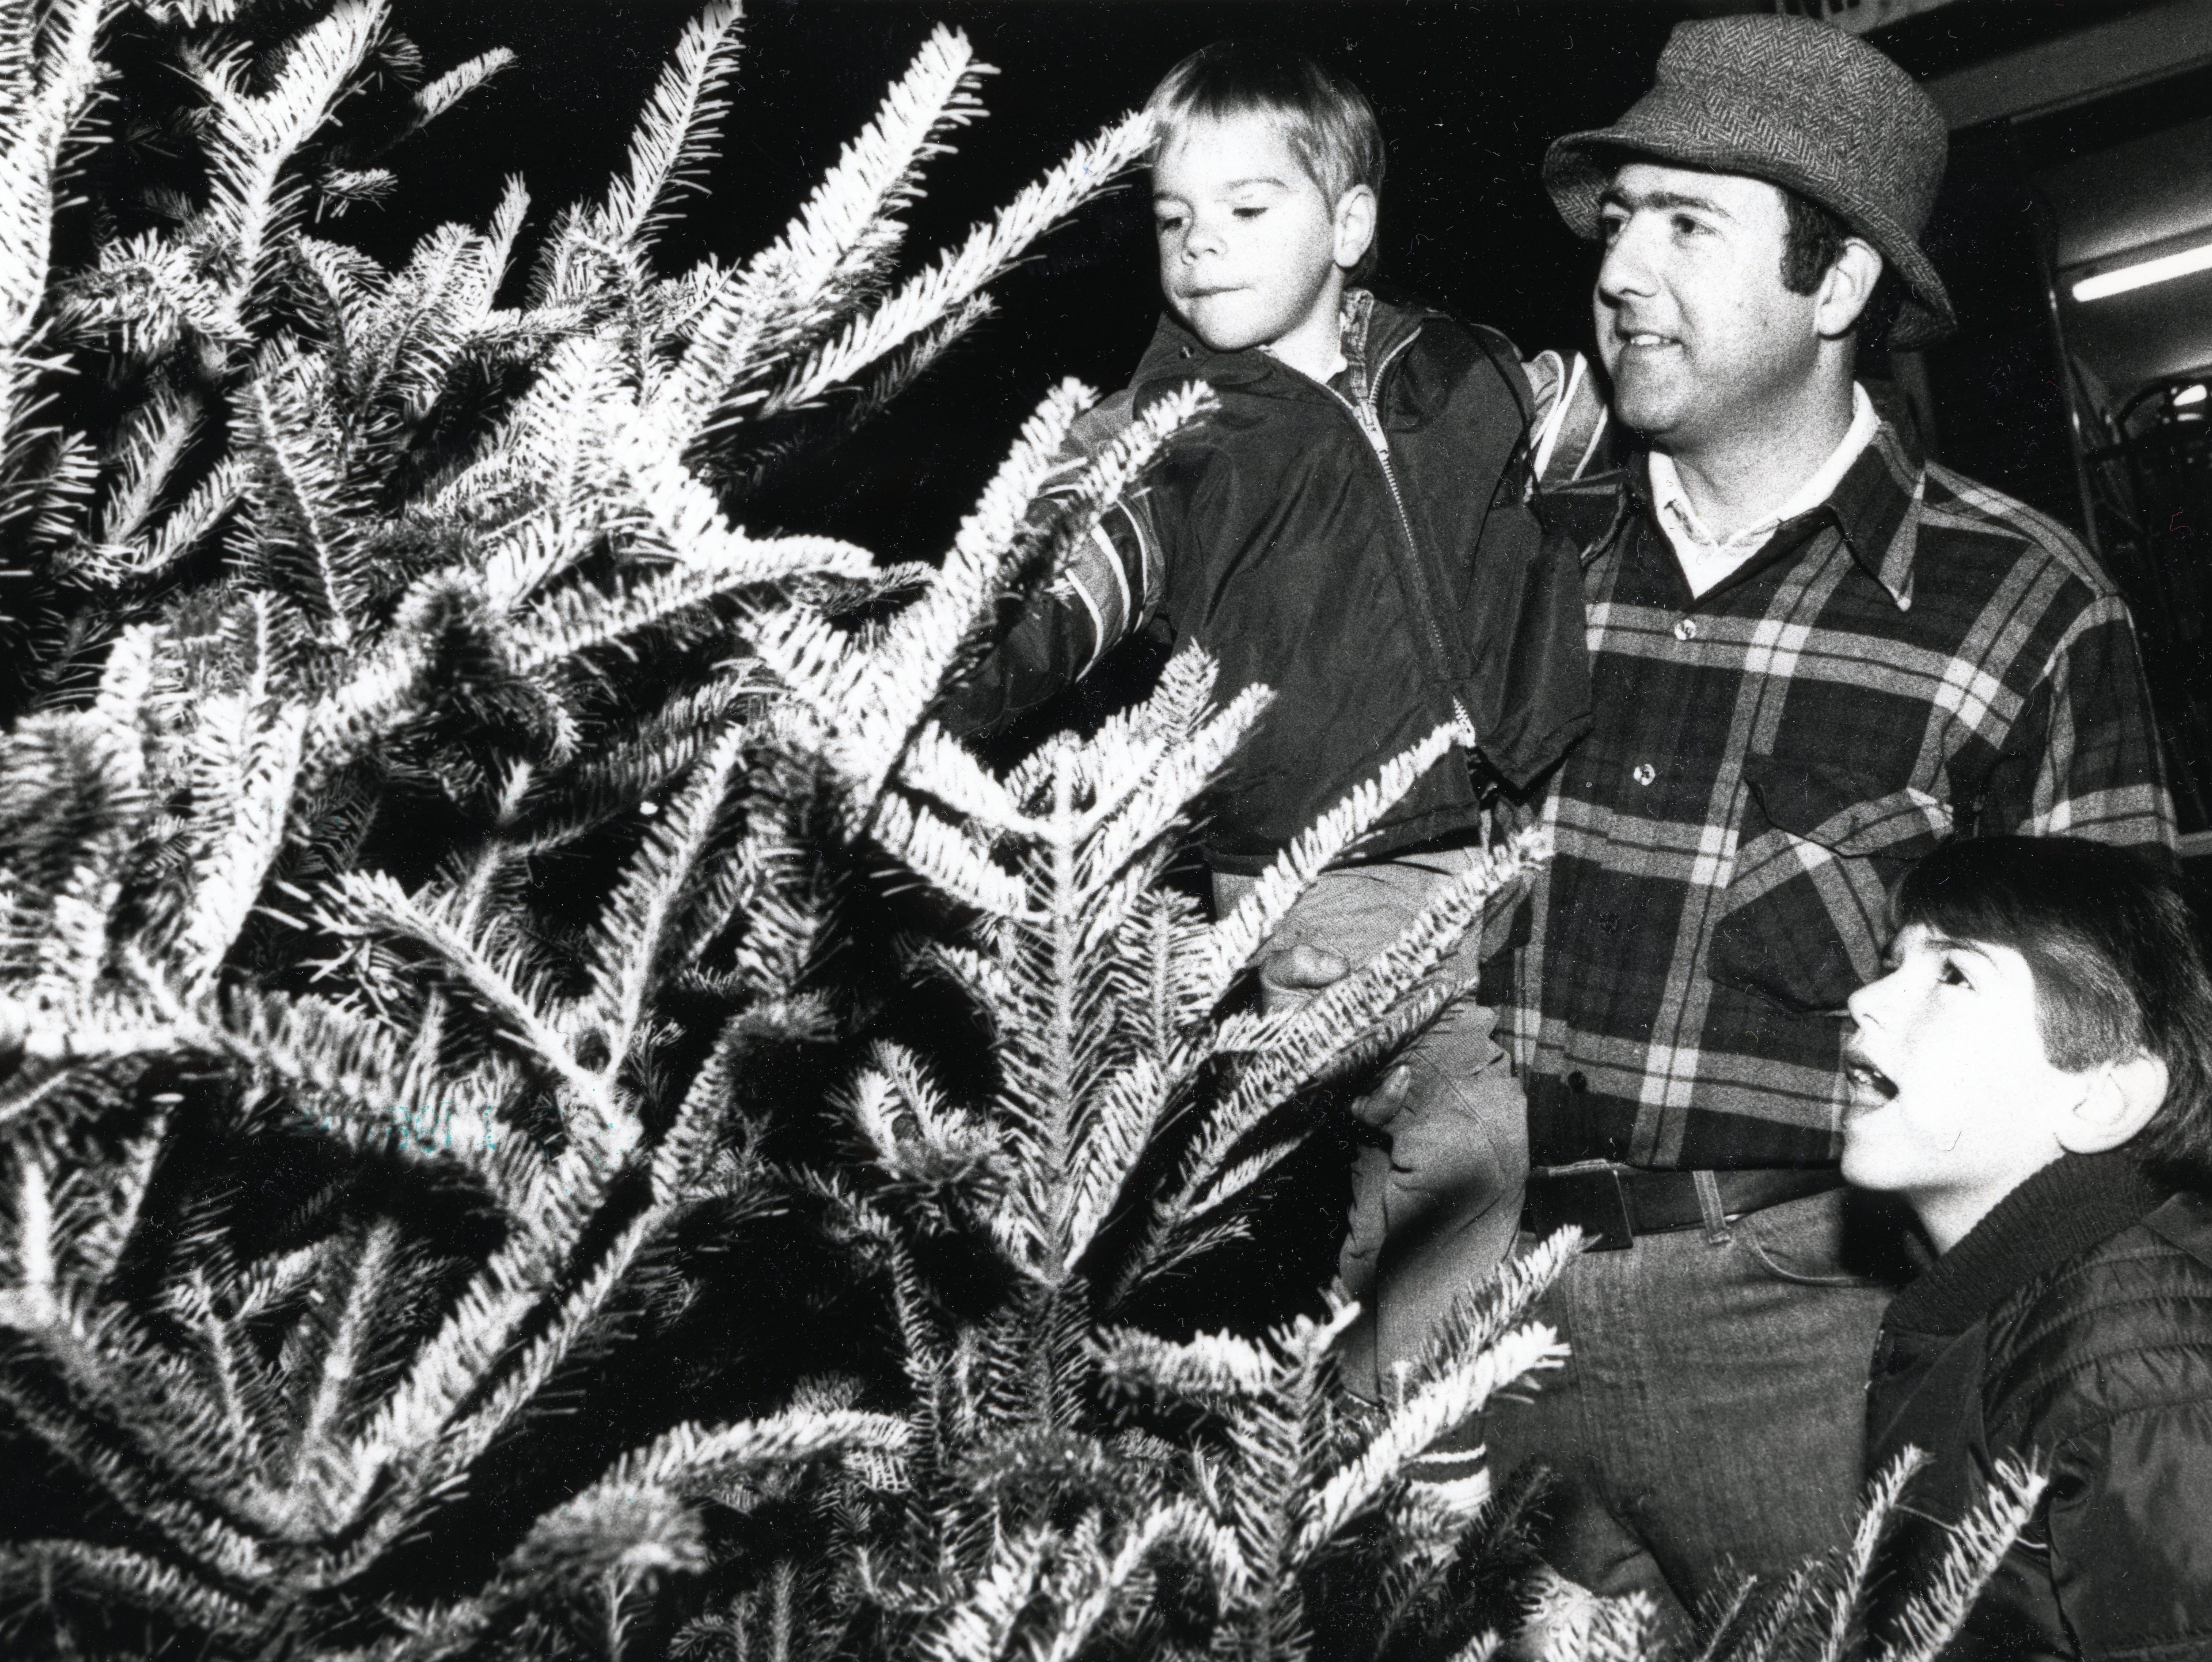 K.M Spouse, David, 5, and Brian, 7, make their tree selection in December 1981 in Knoxville.